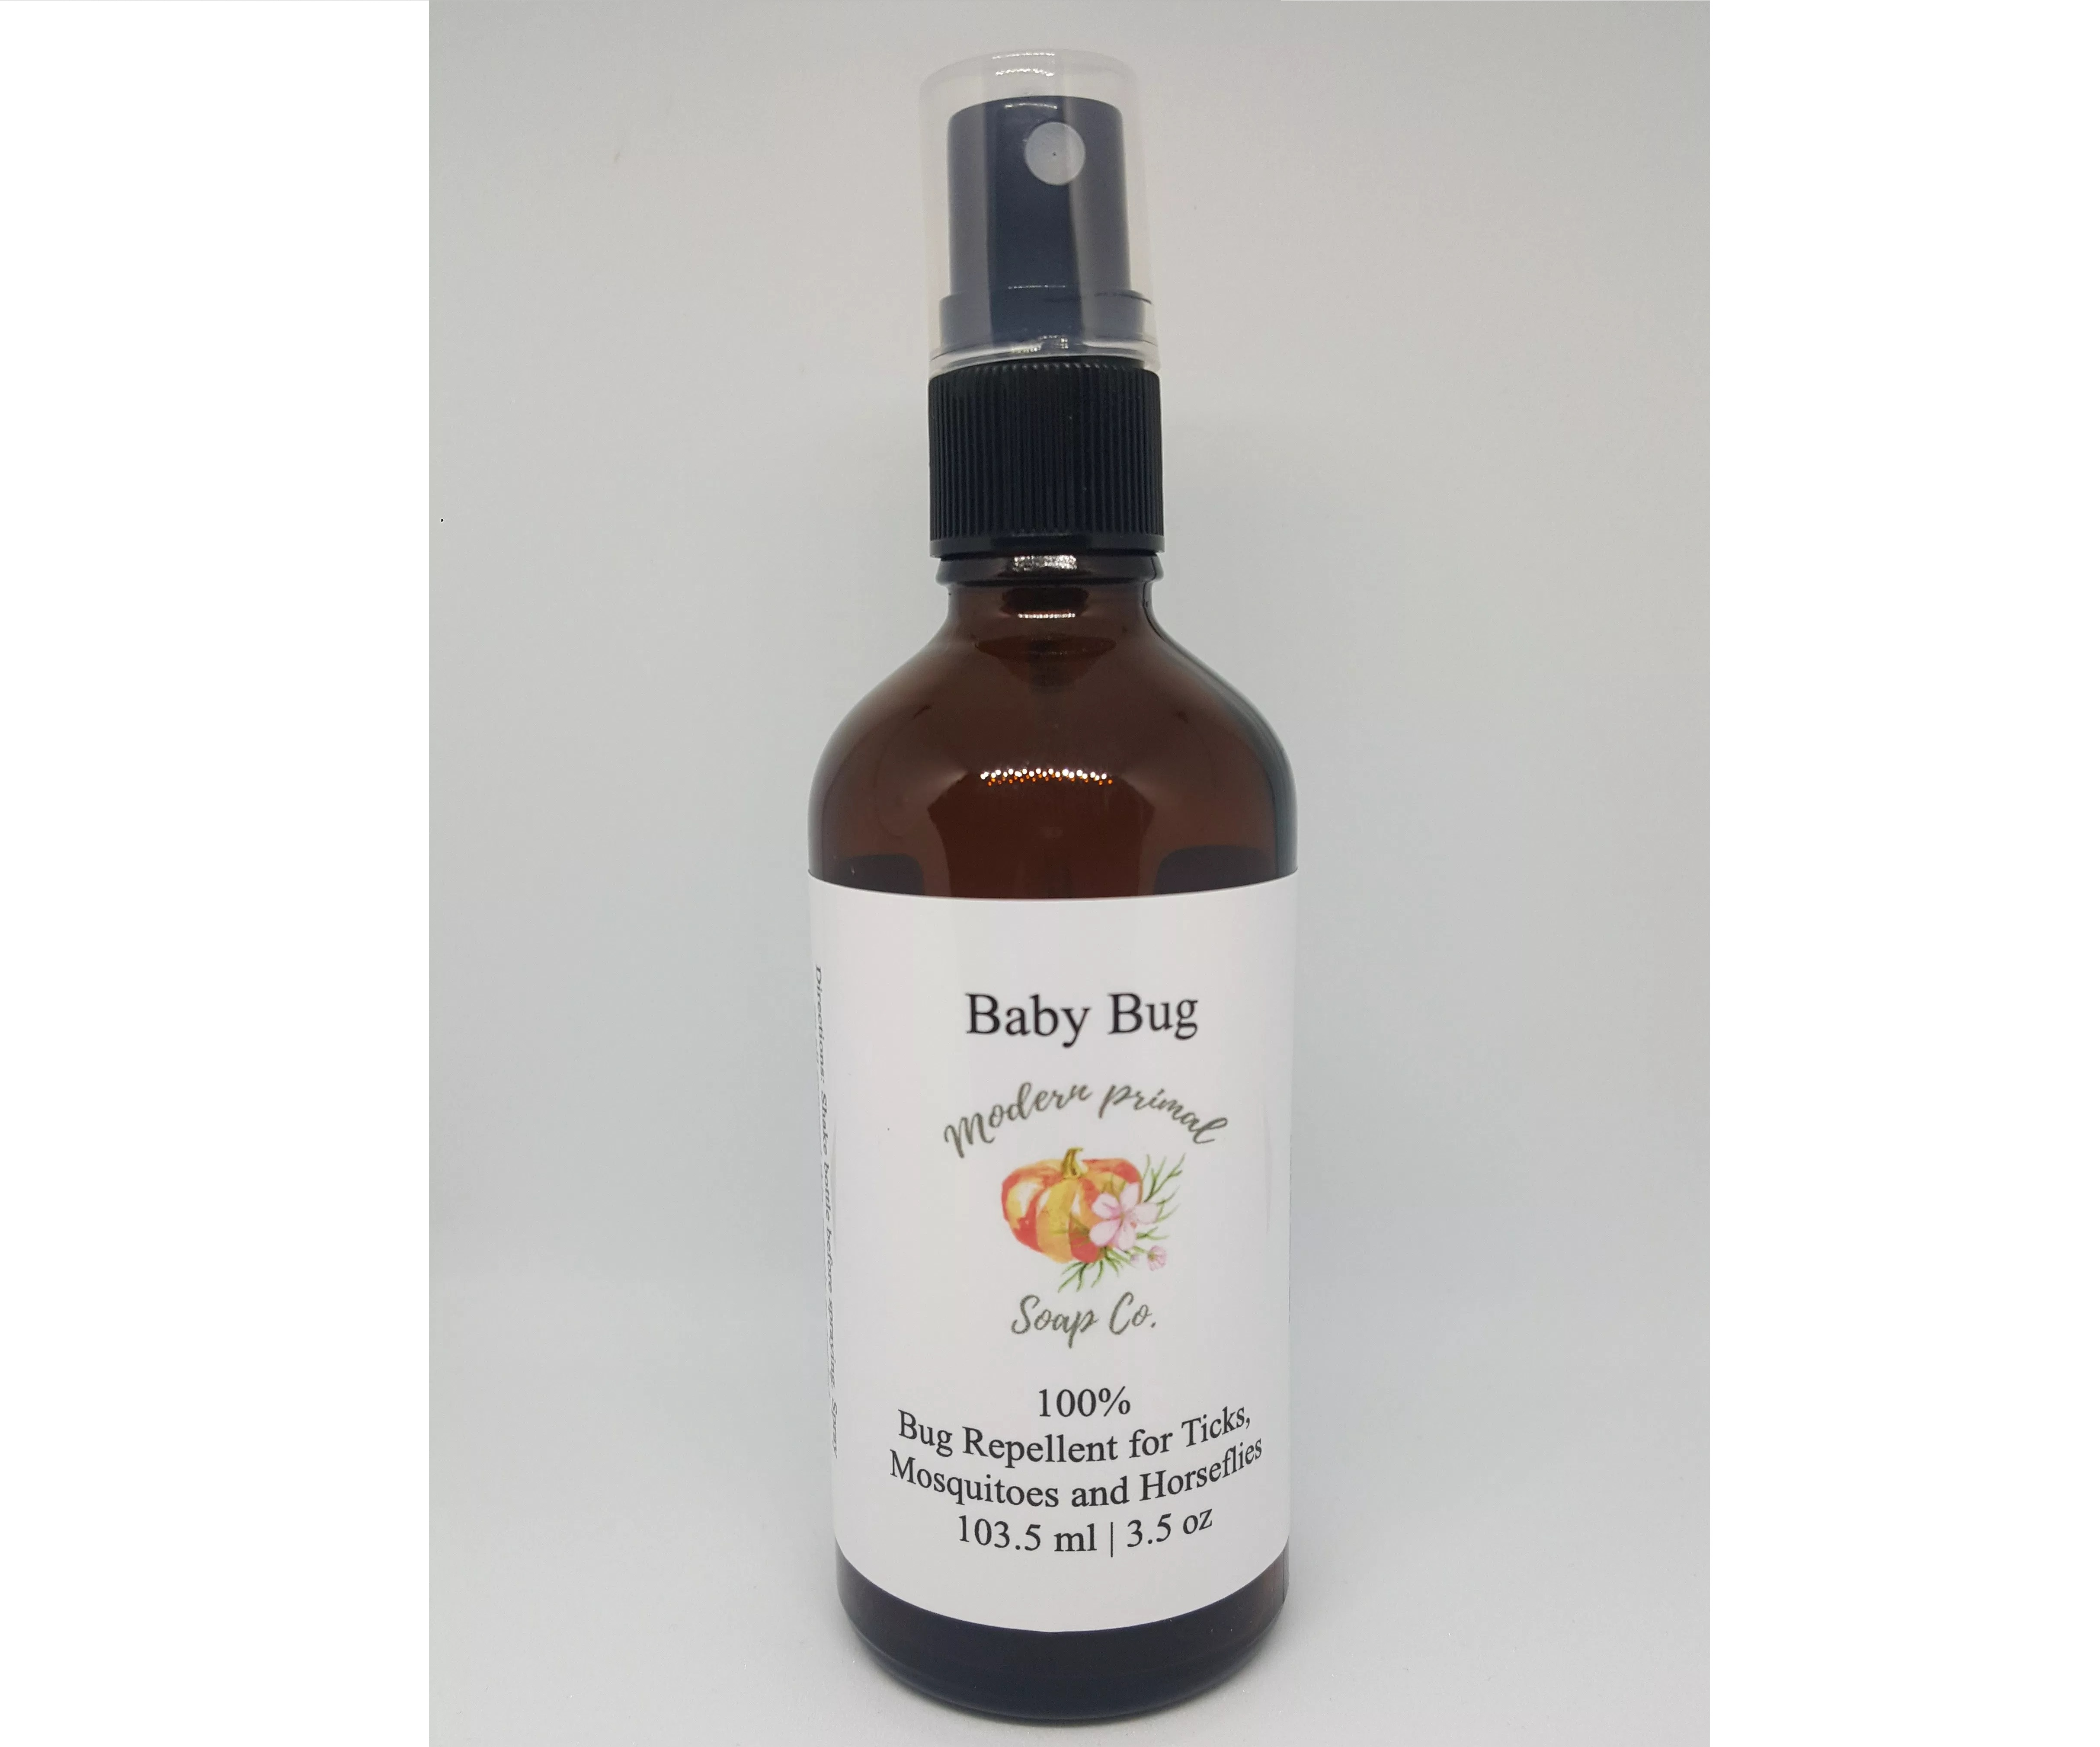 Baby Bug Natural Insect Repellent Salty Home